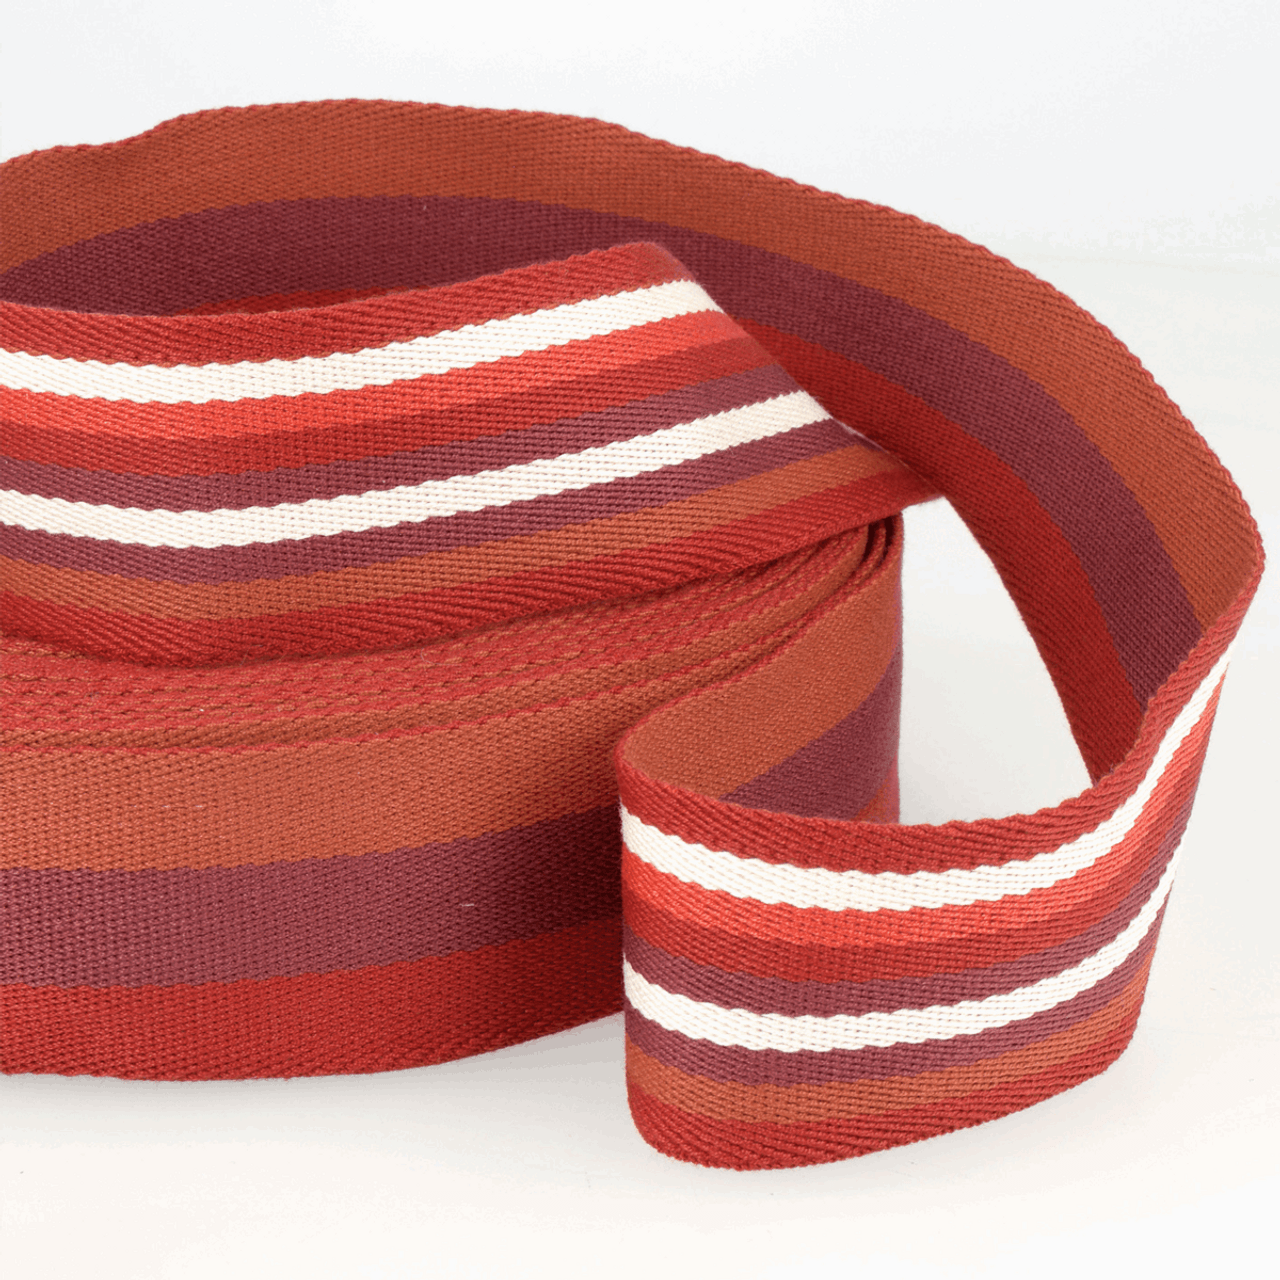 Stephanoise | Webbing | 40mm | Double-sided Stripes, Red